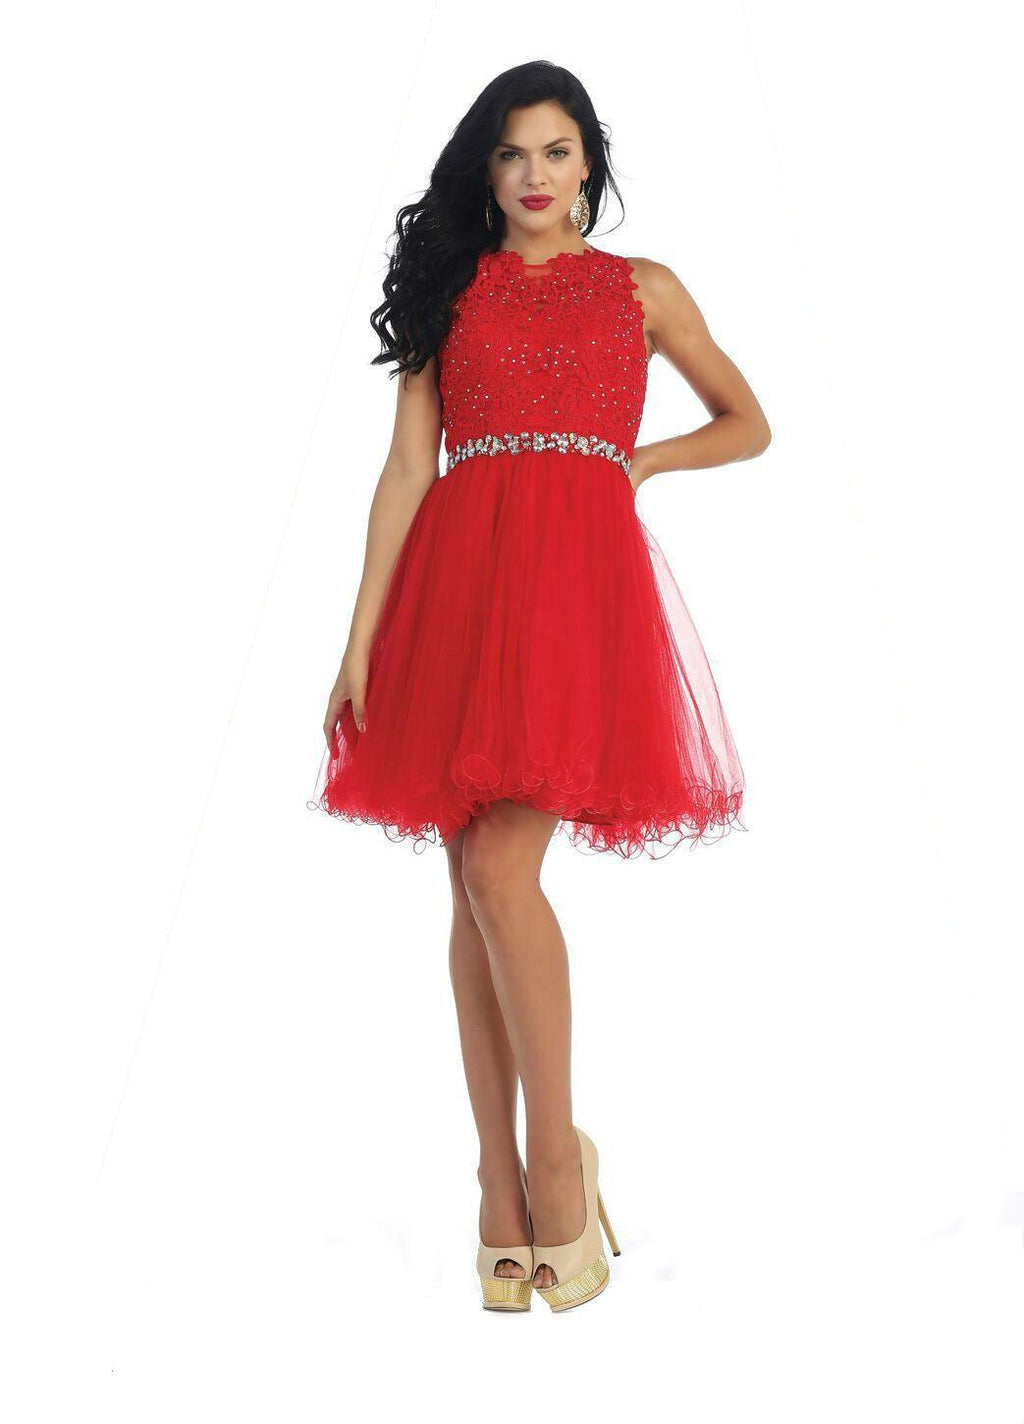 Short Prom Homecoming Graduation Dress - The Dress Outlet Red May Queen